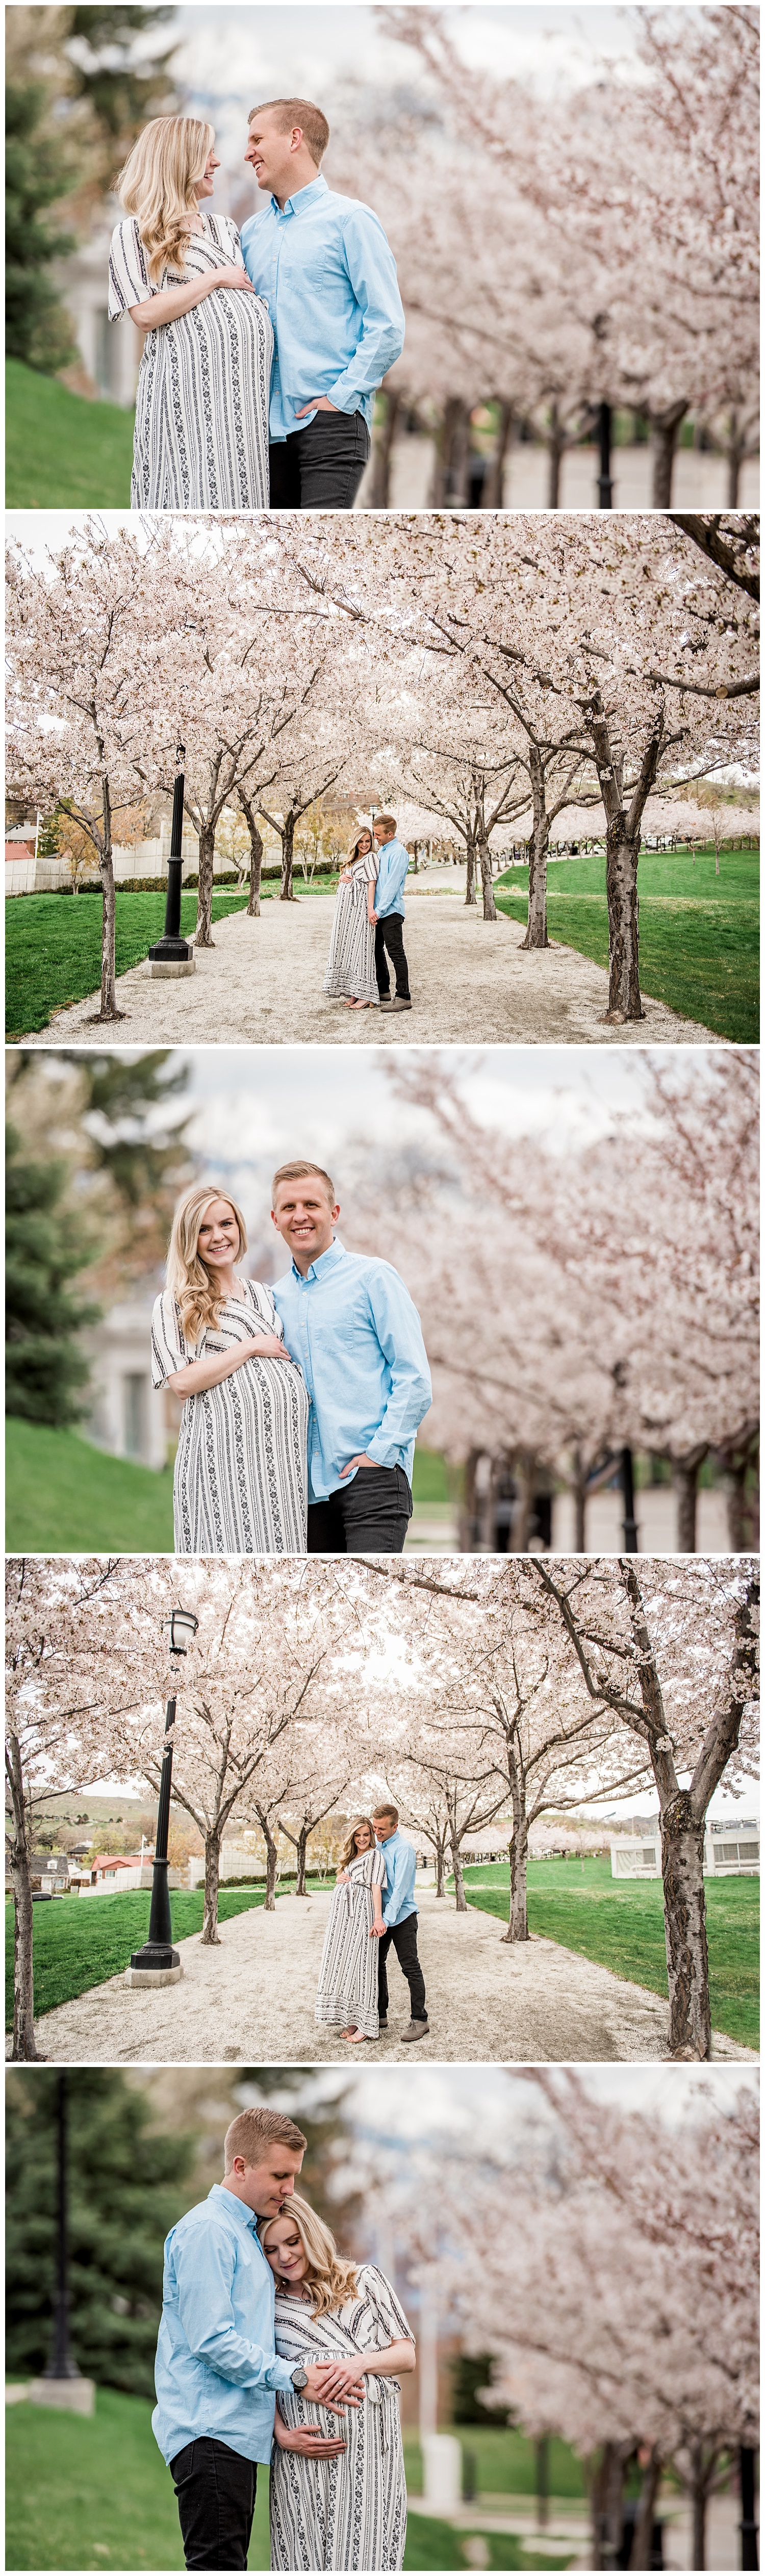 Dan Page Photography, Utah State Capitol Maternity Session, Spring Cherry Blossoms (11).jpg